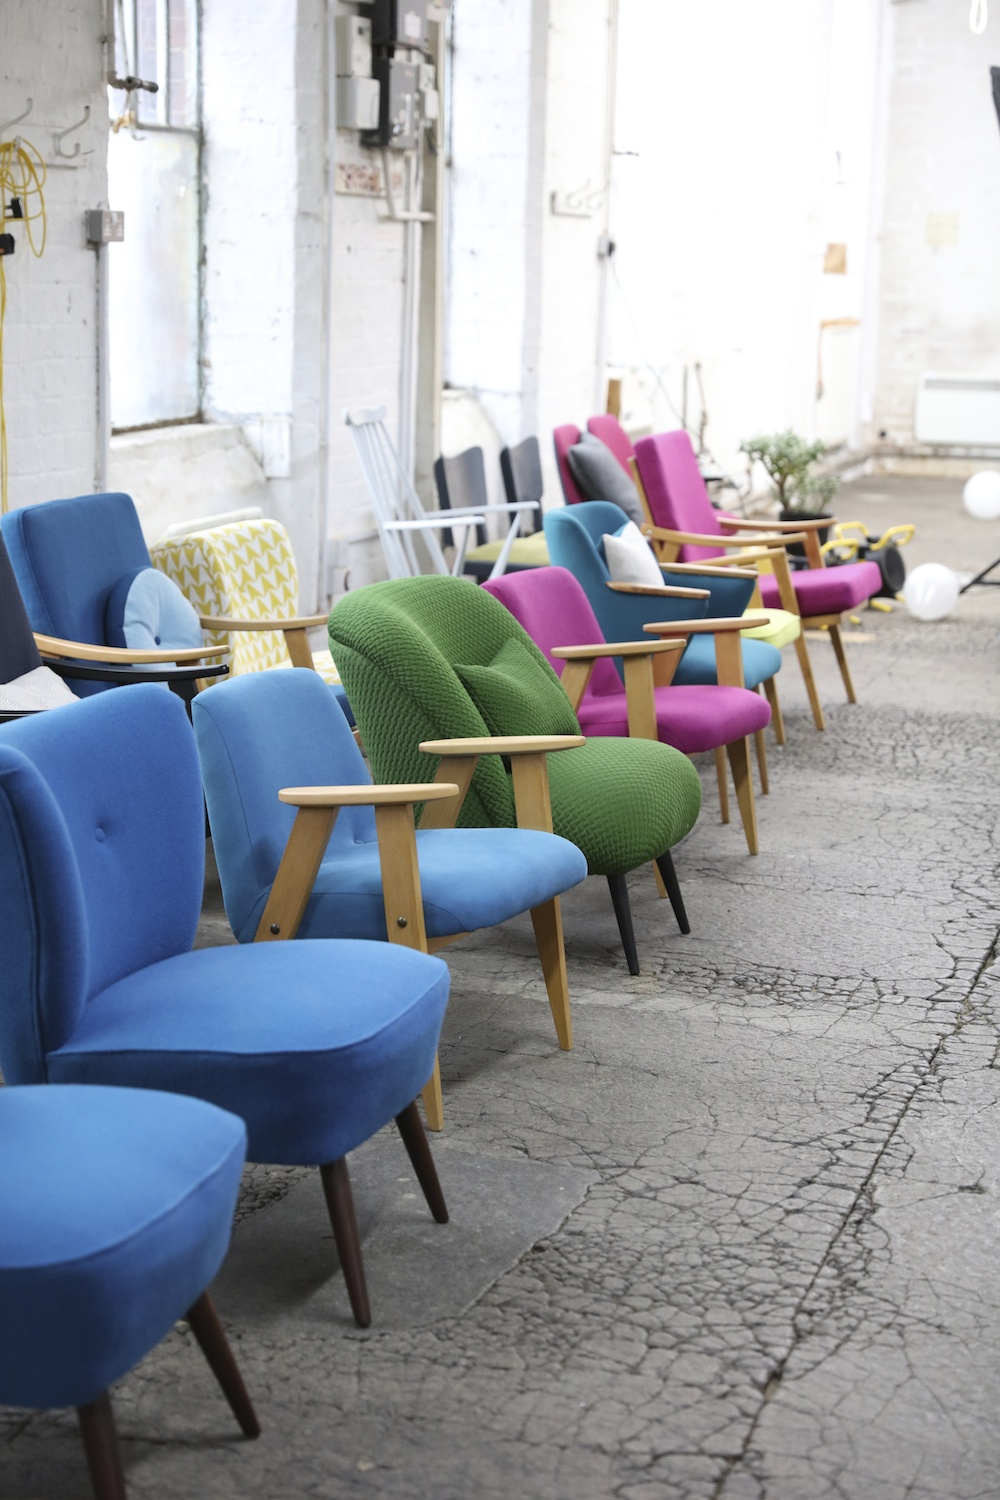 Florrie_and_bill_vintage_chairs